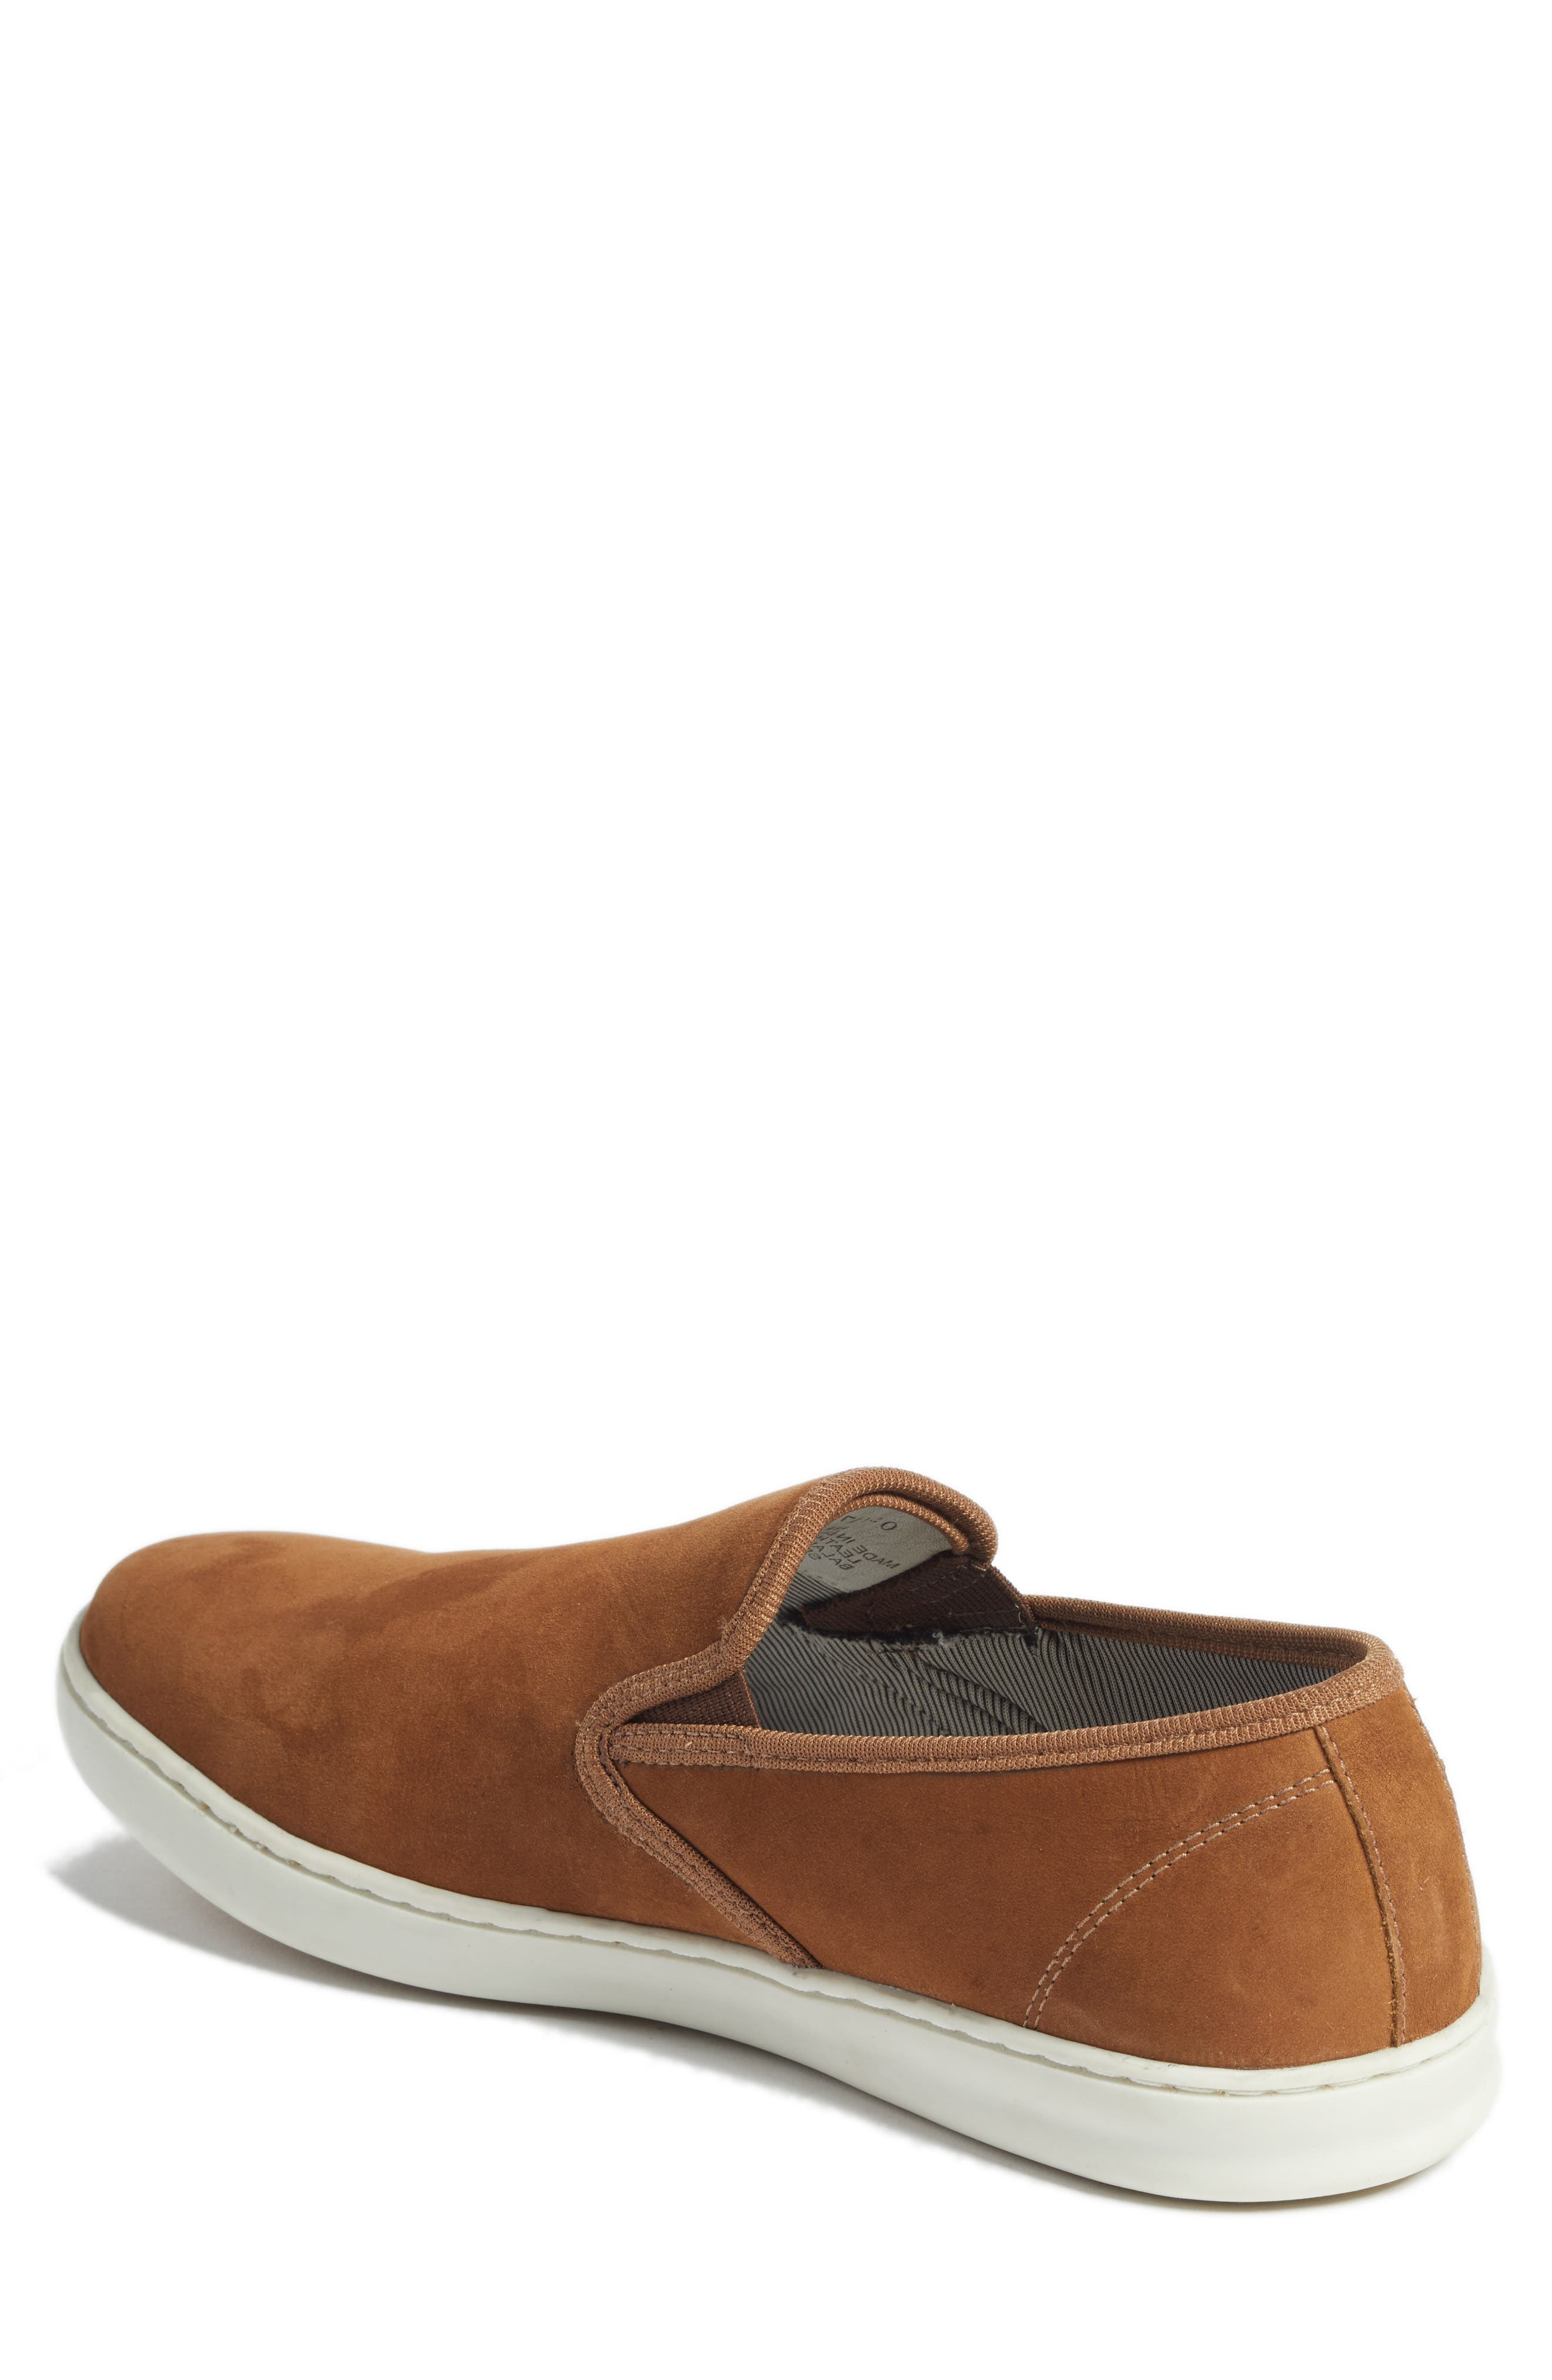 Malibu Slip-on,                             Alternate thumbnail 2, color,                             Tan Nubuck